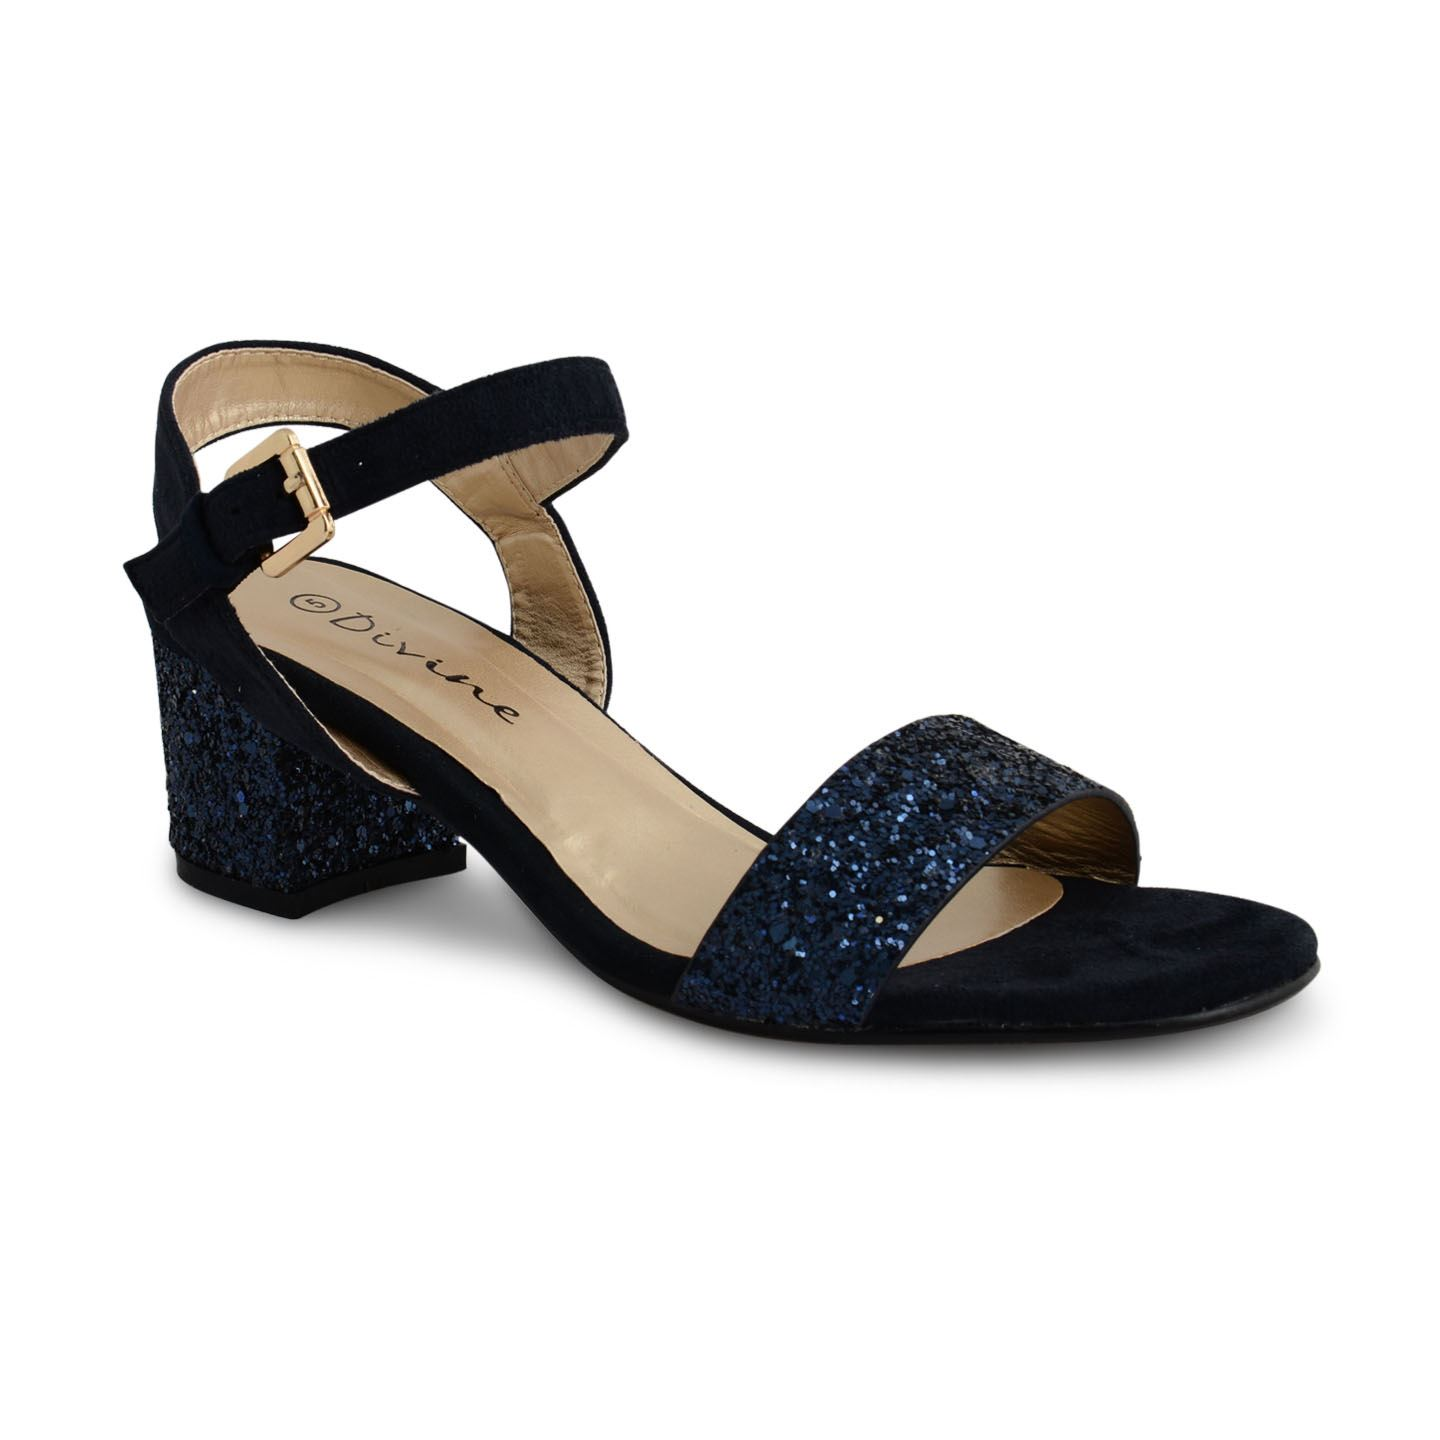 LADIES-WOMENS-ANKLE-STRAP-CHUNKY-SANDALS-LOW-HEEL-OPEN-TOE-SUMMER-SHOES-SIZE